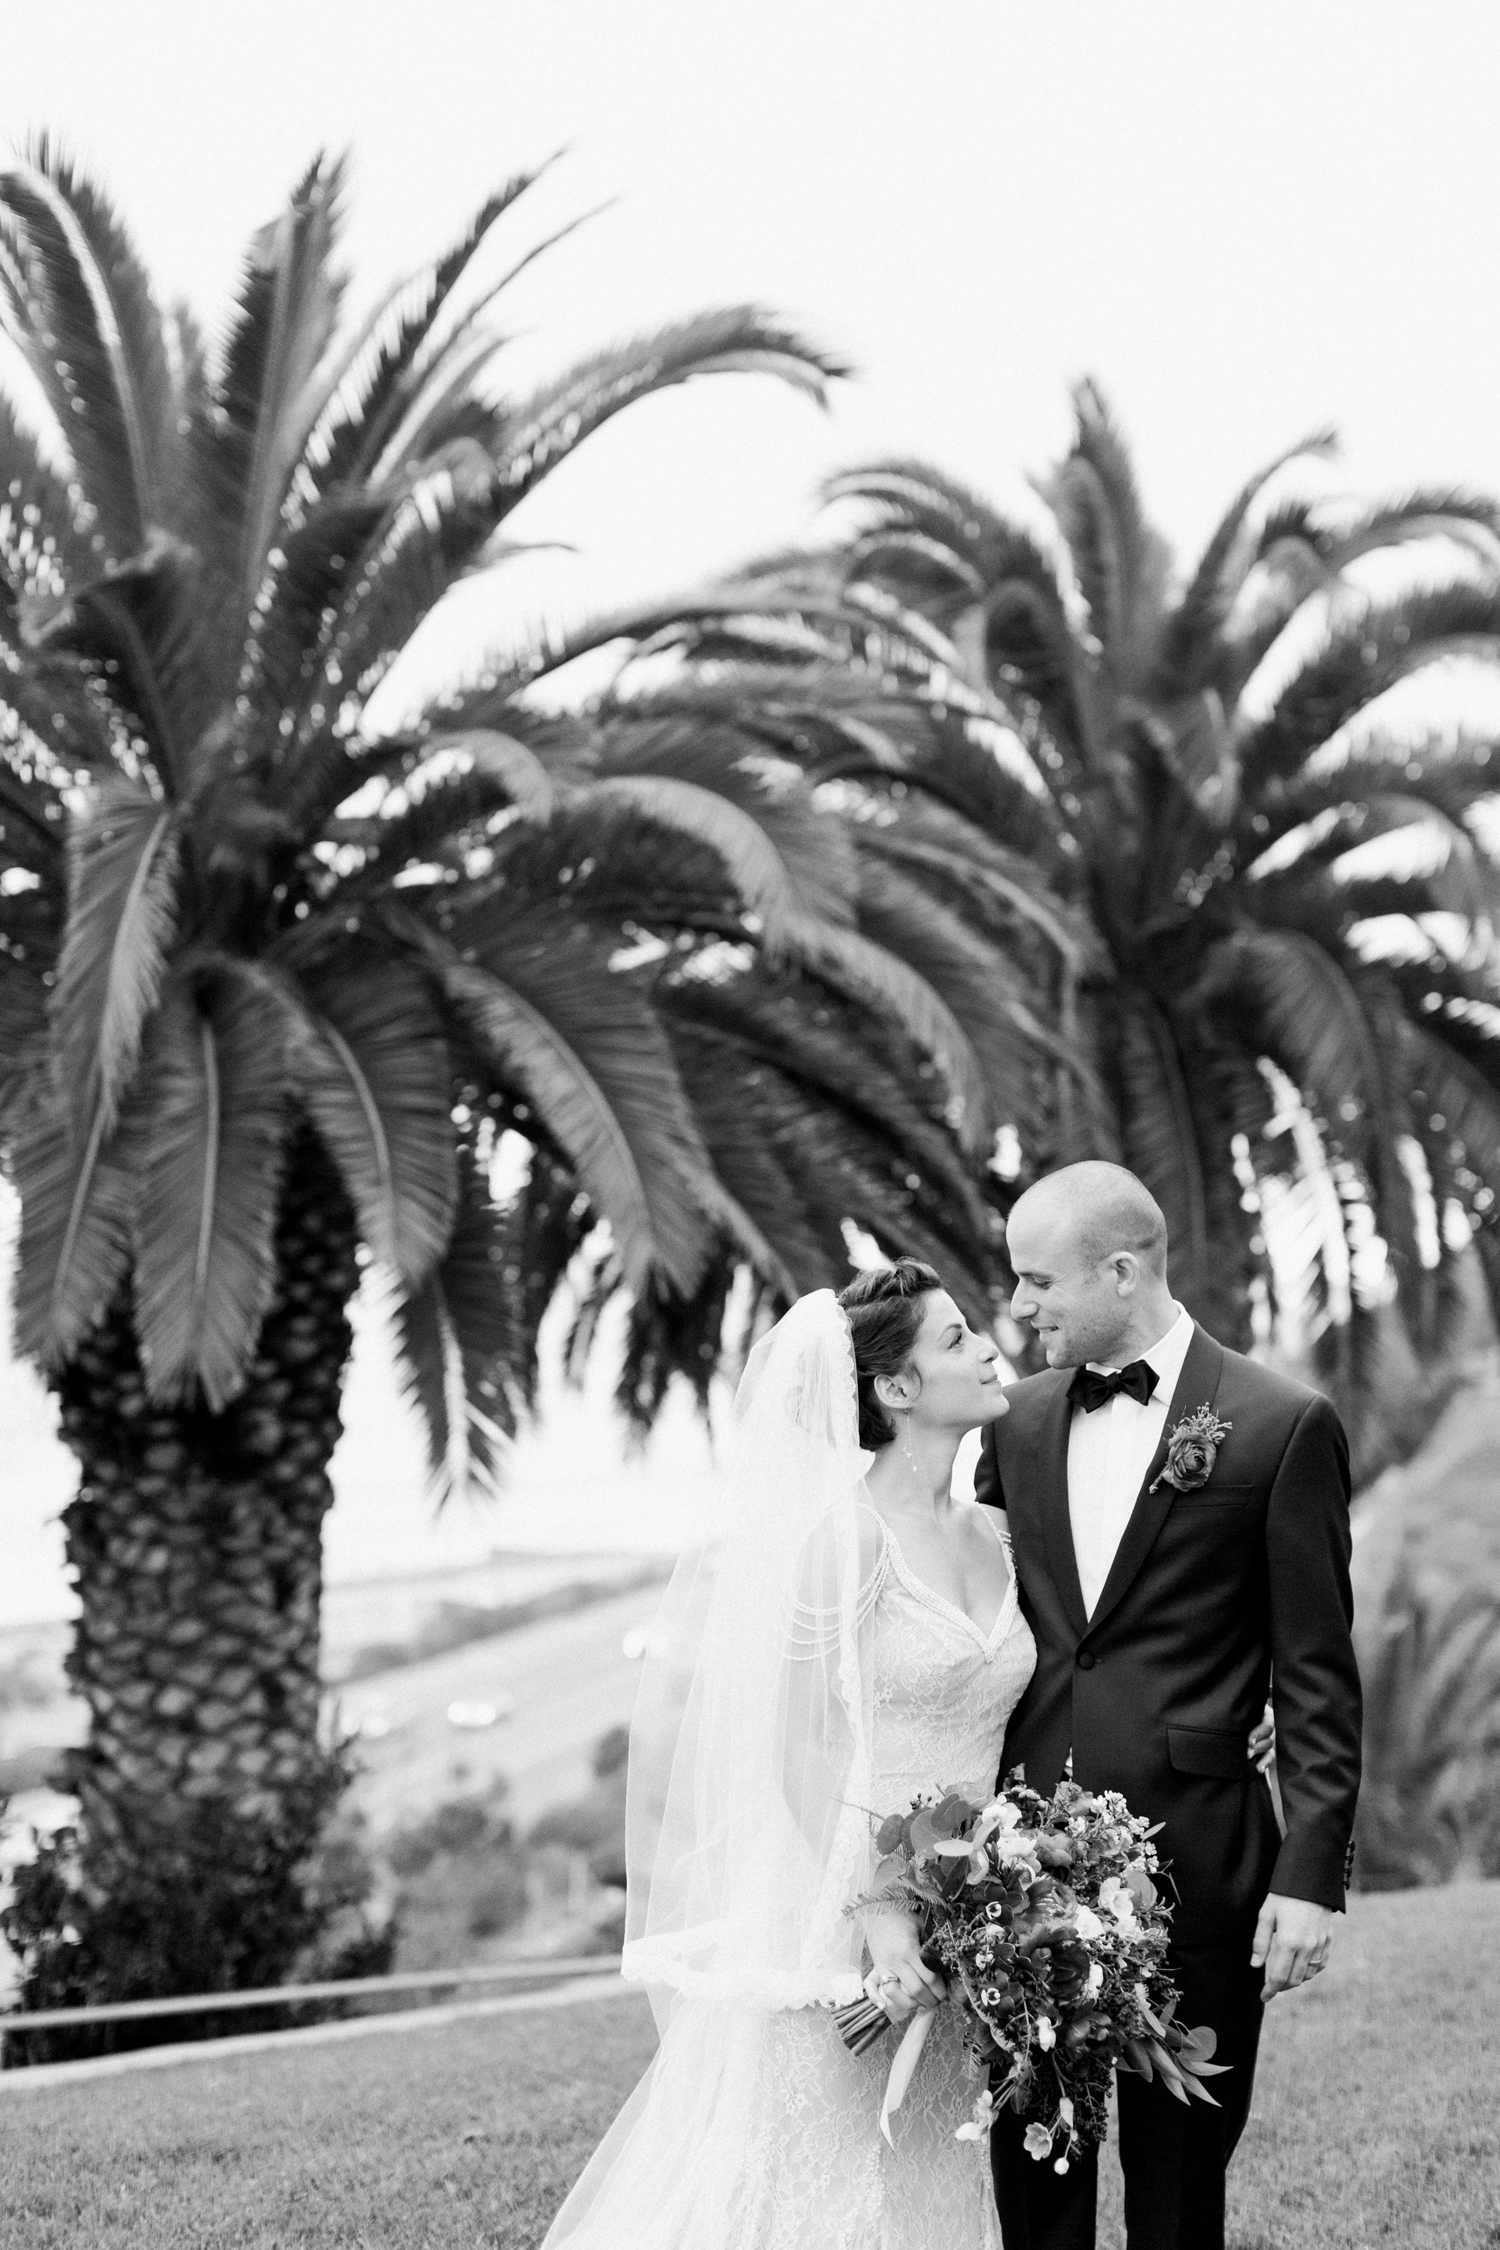 thevondys.com | Bel Air Bay Club Weddings | The Vondys Wedding Photography in Southern California | Destination Photographer